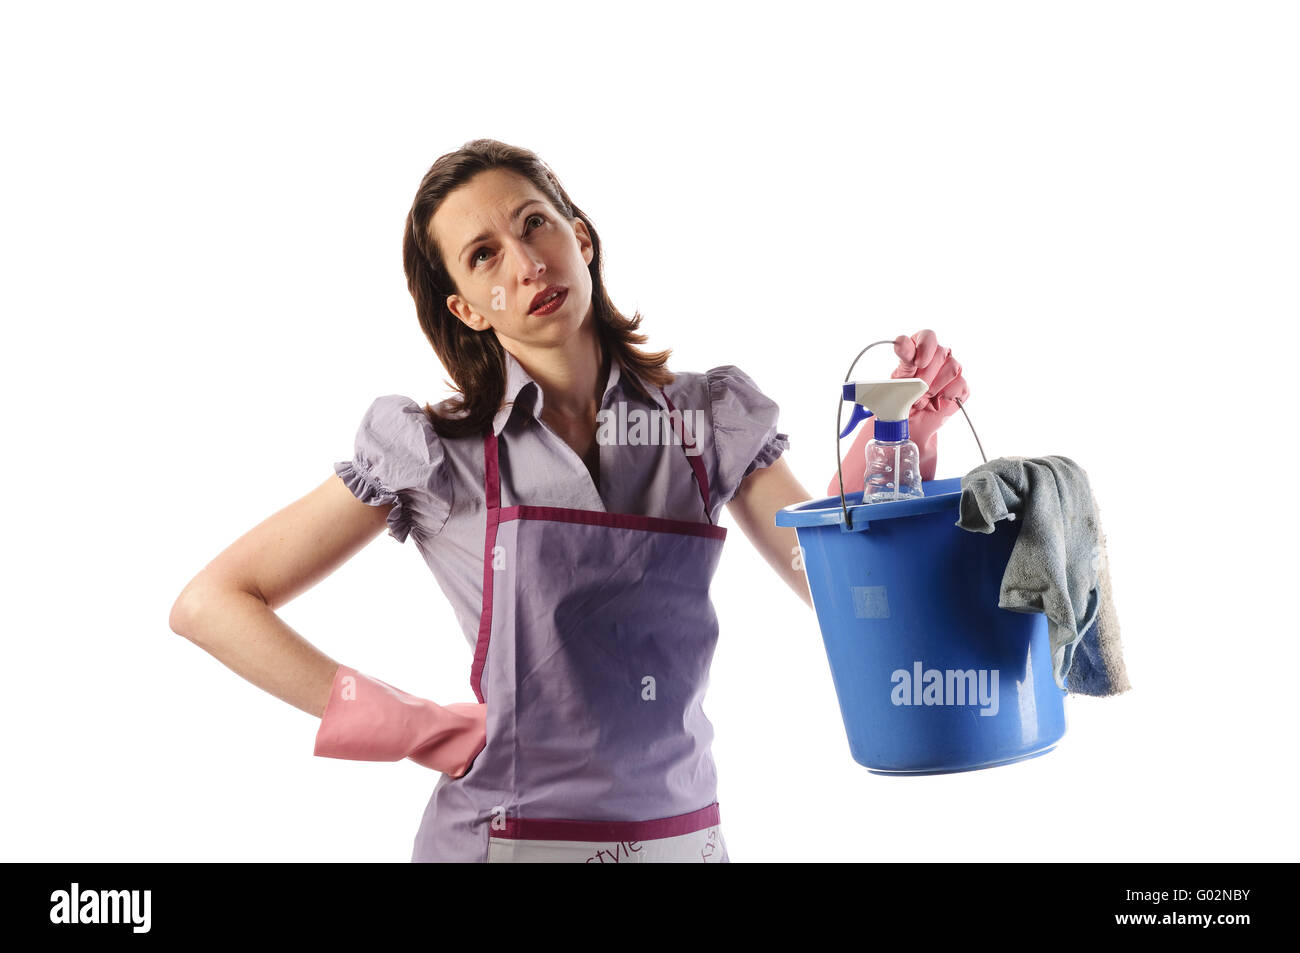 Housewife, cleaning lady with mop bucket frustrating, - Stock Image